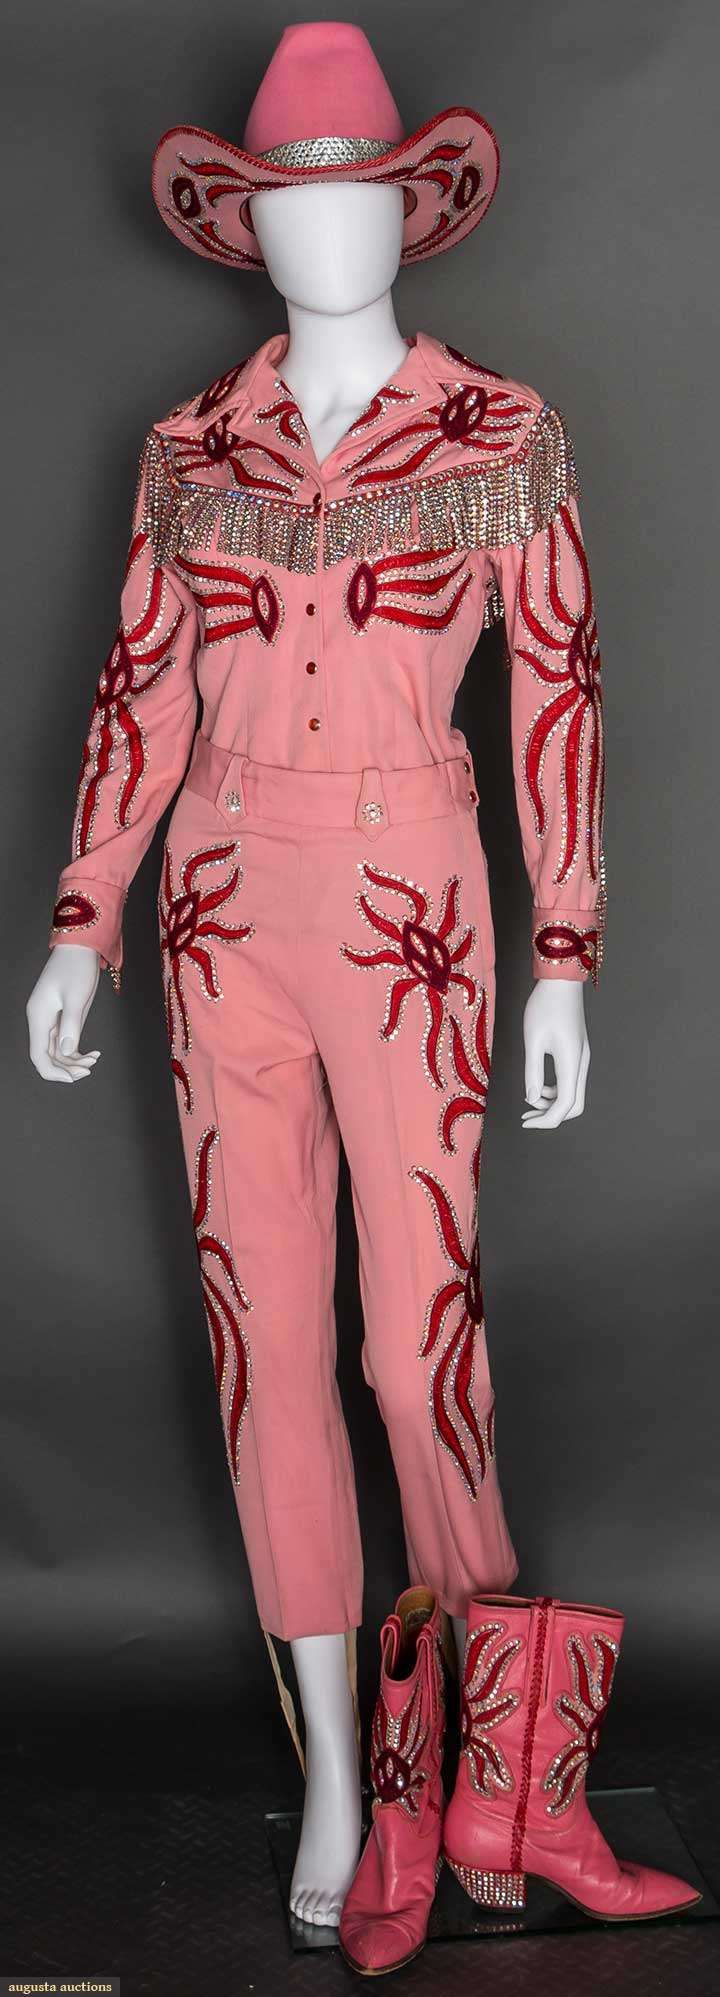 Nudie 4-piece Lady's Pink Rodeo Outfit, 1970, Augusta Auctions, April 8, 2015 NYC